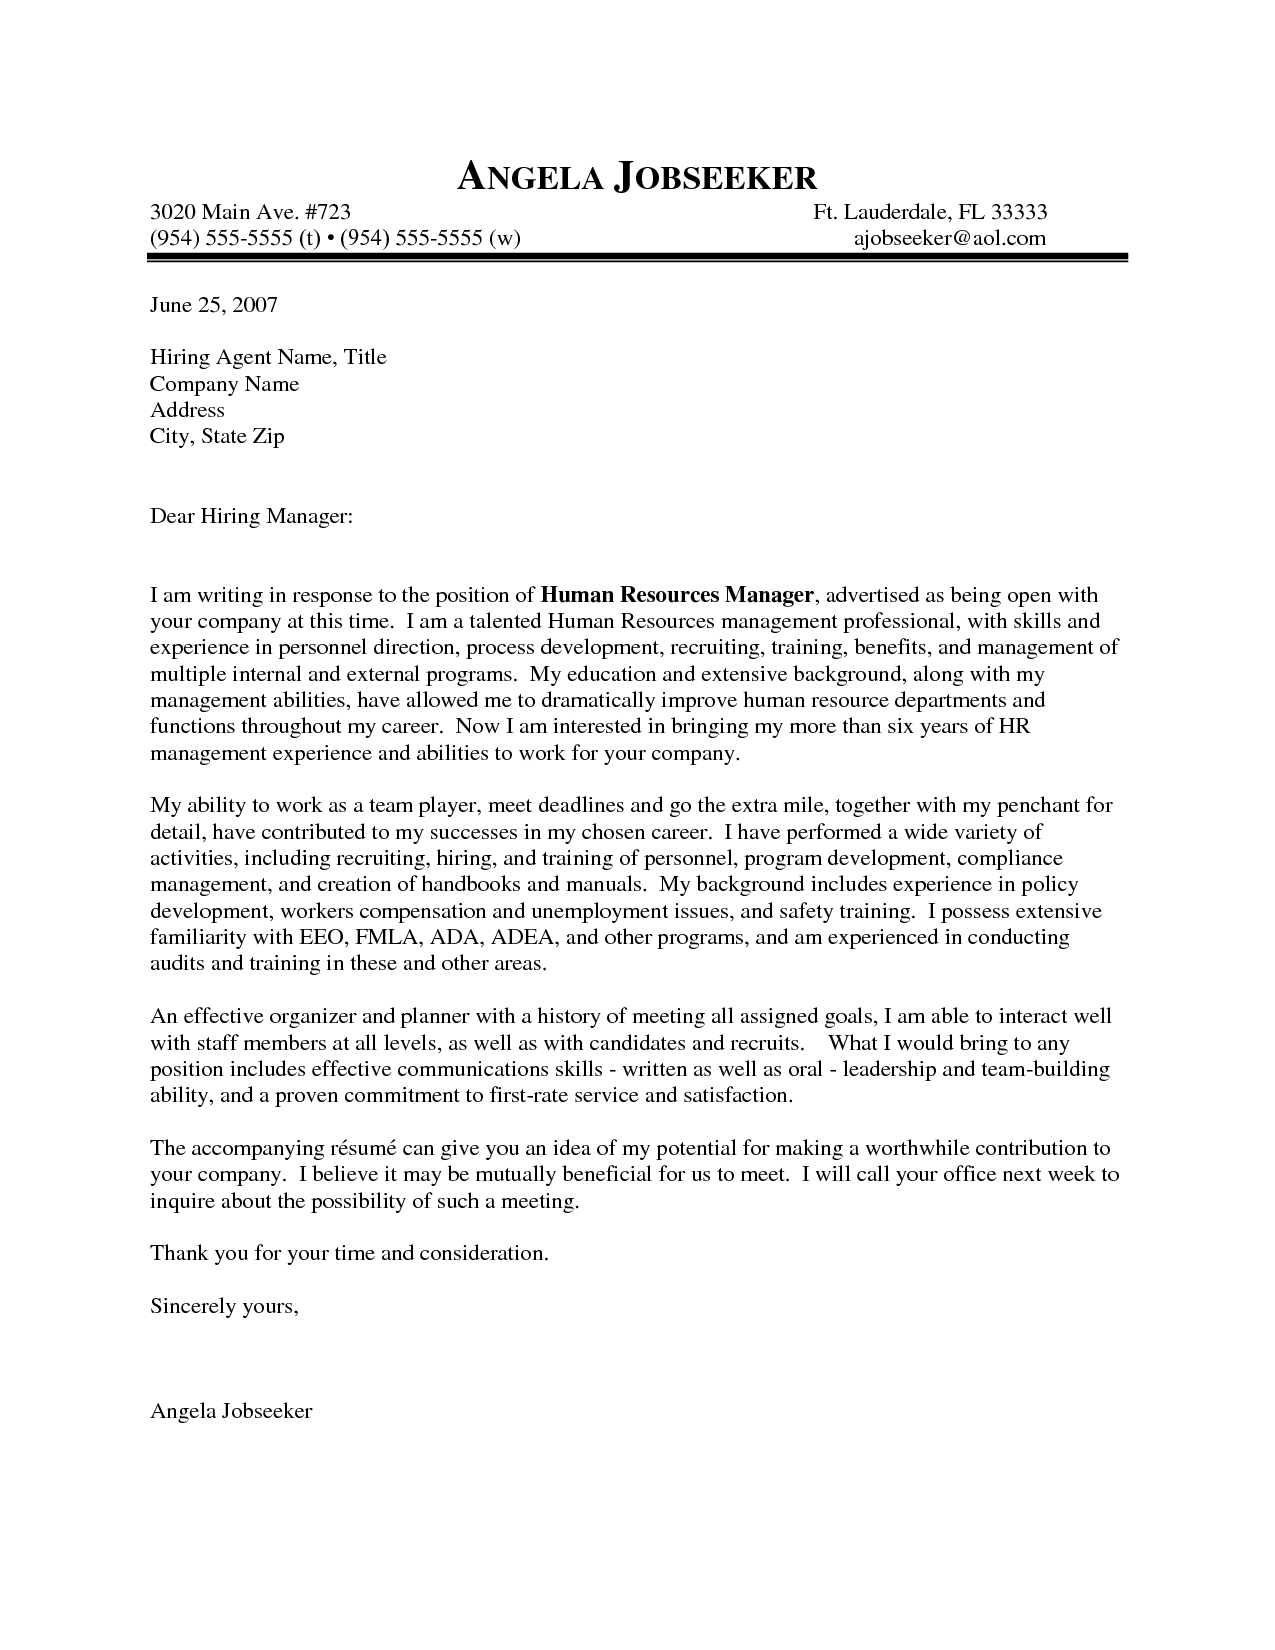 Outstanding cover letter examples hr manager cover letter example how to write a good cover letter for employment best sample cover letters need even more attention grabbing cover madrichimfo Image collections